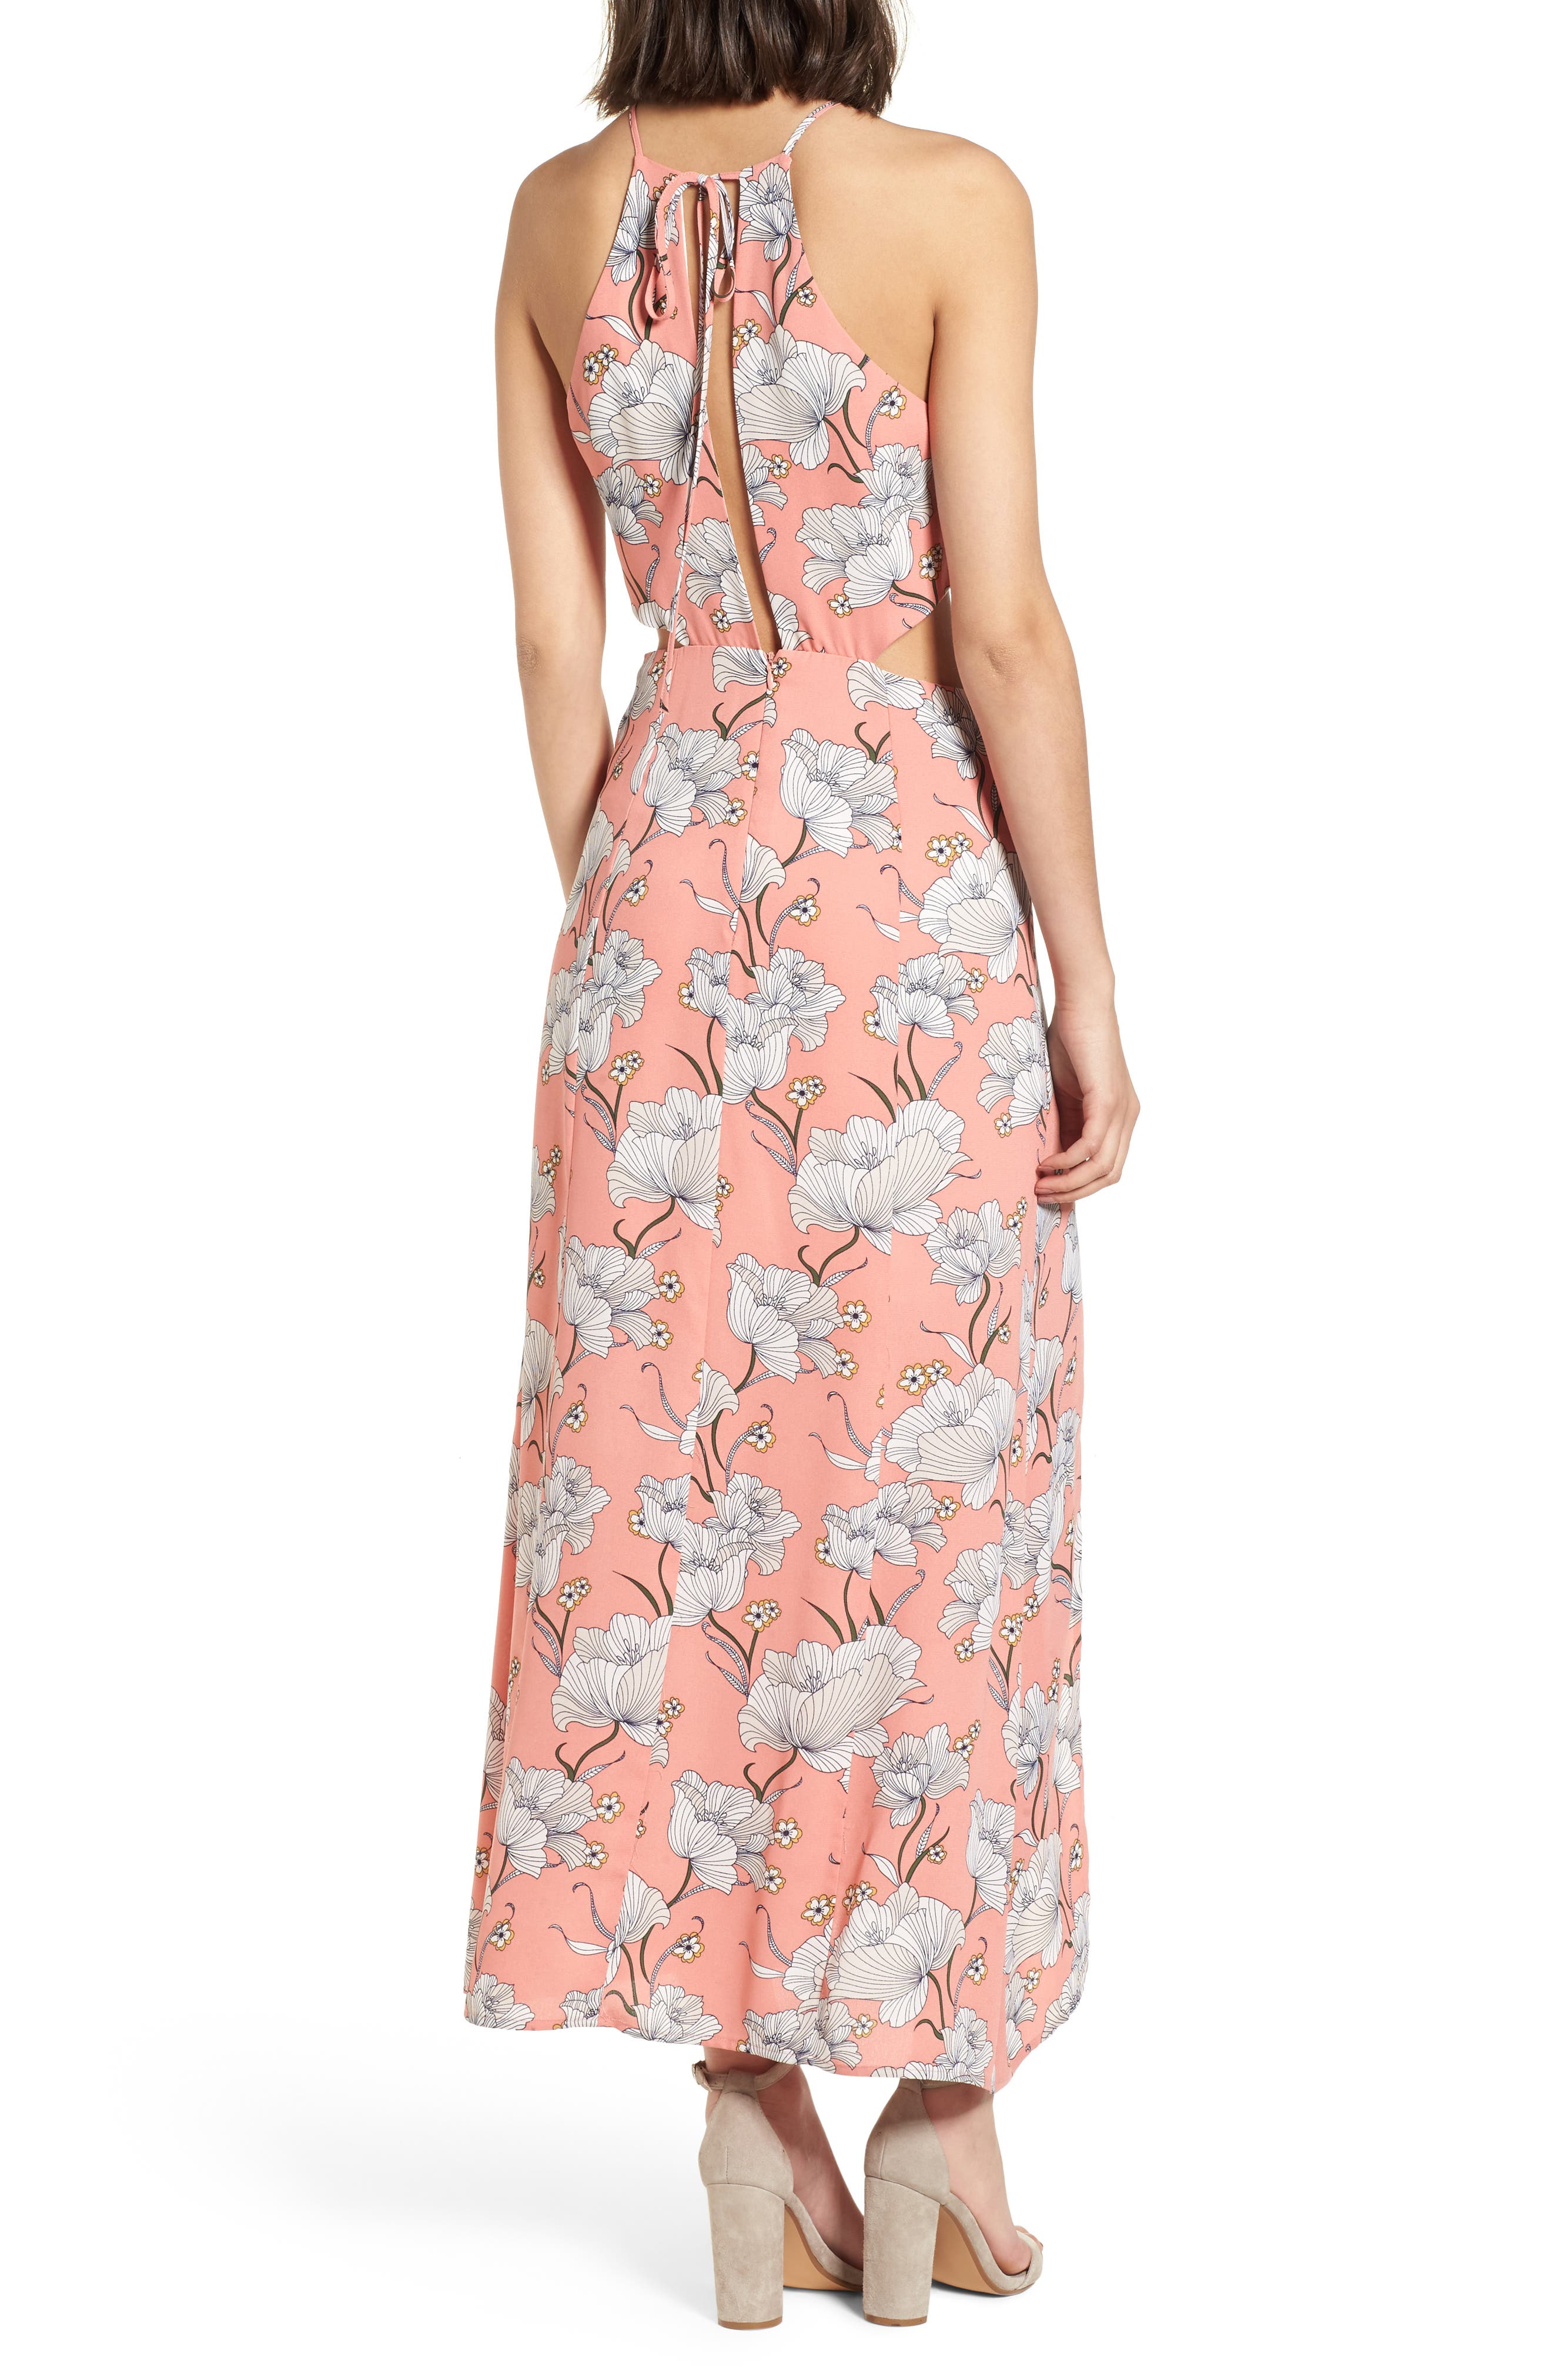 Floral Cutout Maxi Dress,                             Alternate thumbnail 2, color,                             Pink Floral